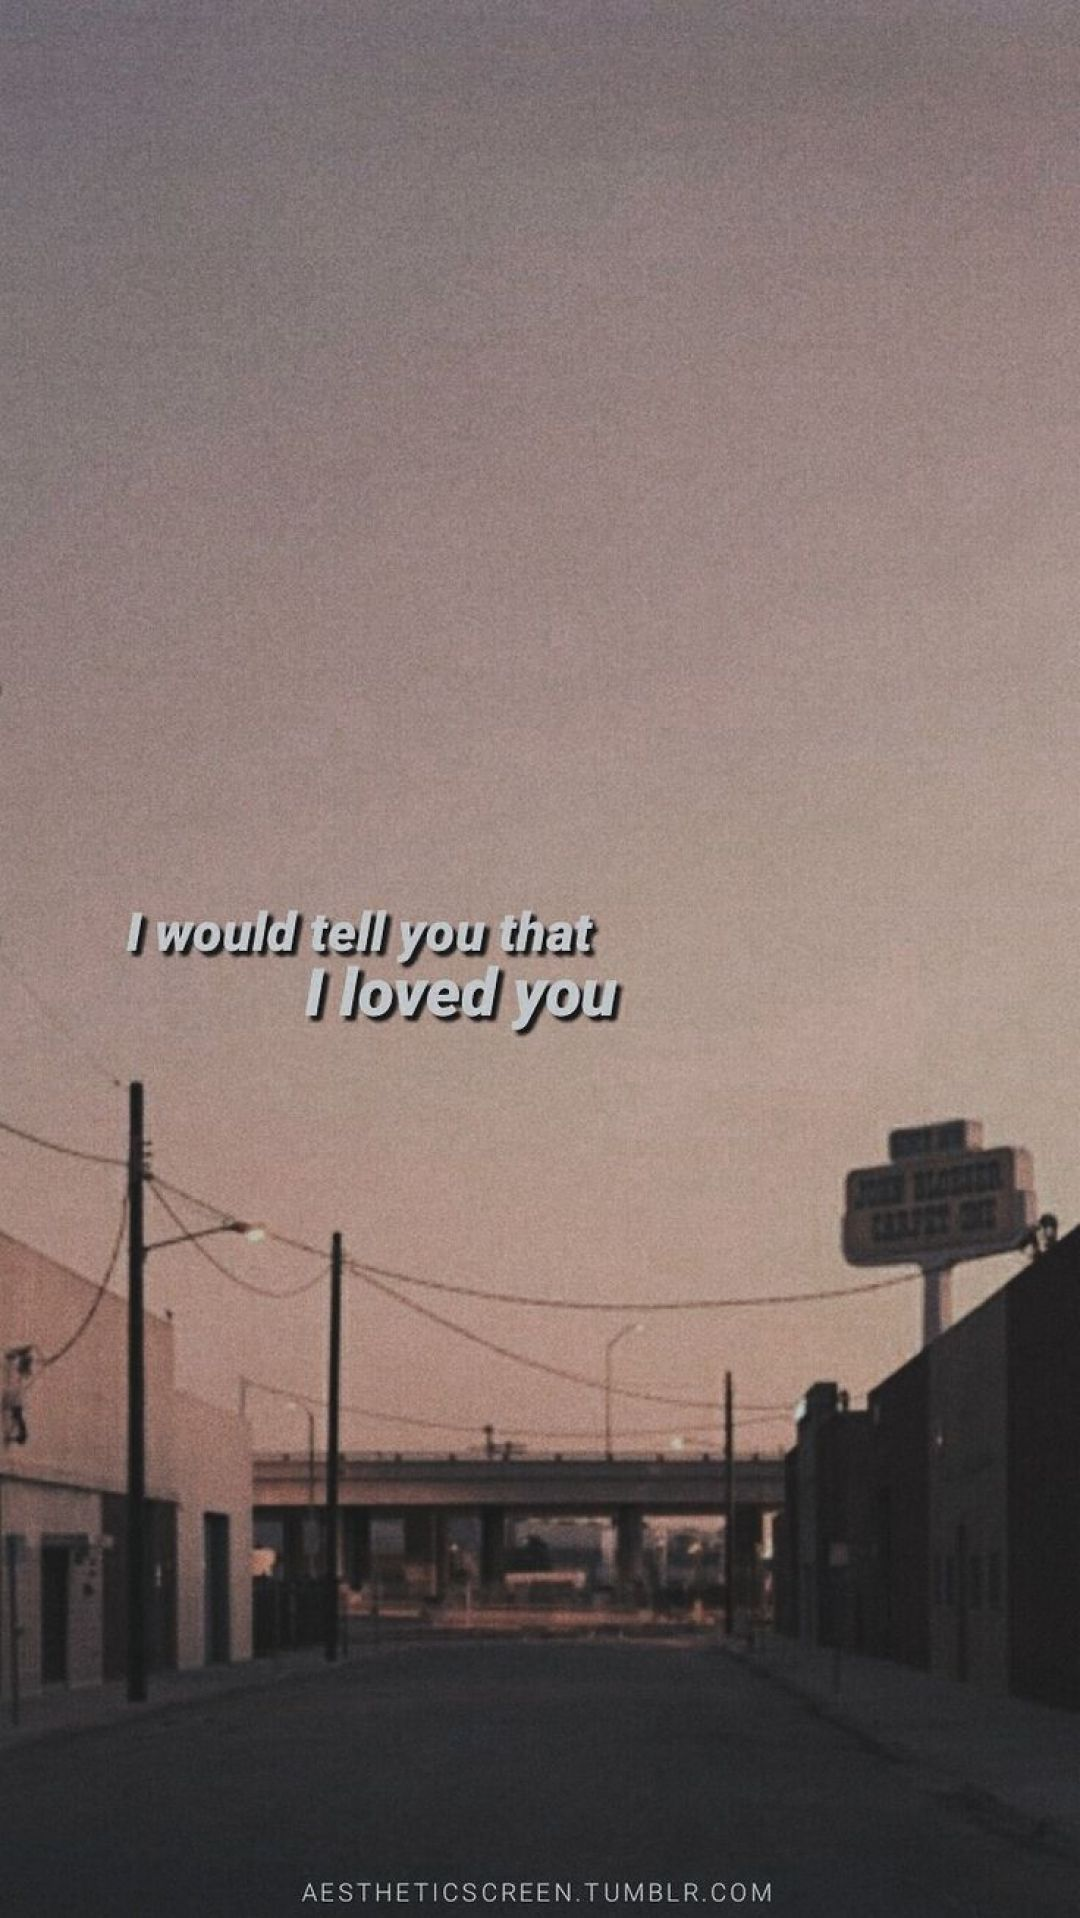 Aesthetic Quotes Wallpaper Ipad Aesthetic Aestheticallypleasing Chillvibes In 2020 Tumblr Quotes Wallpaper Wallpaper Iphone Love Phone Wallpapers Tumblr